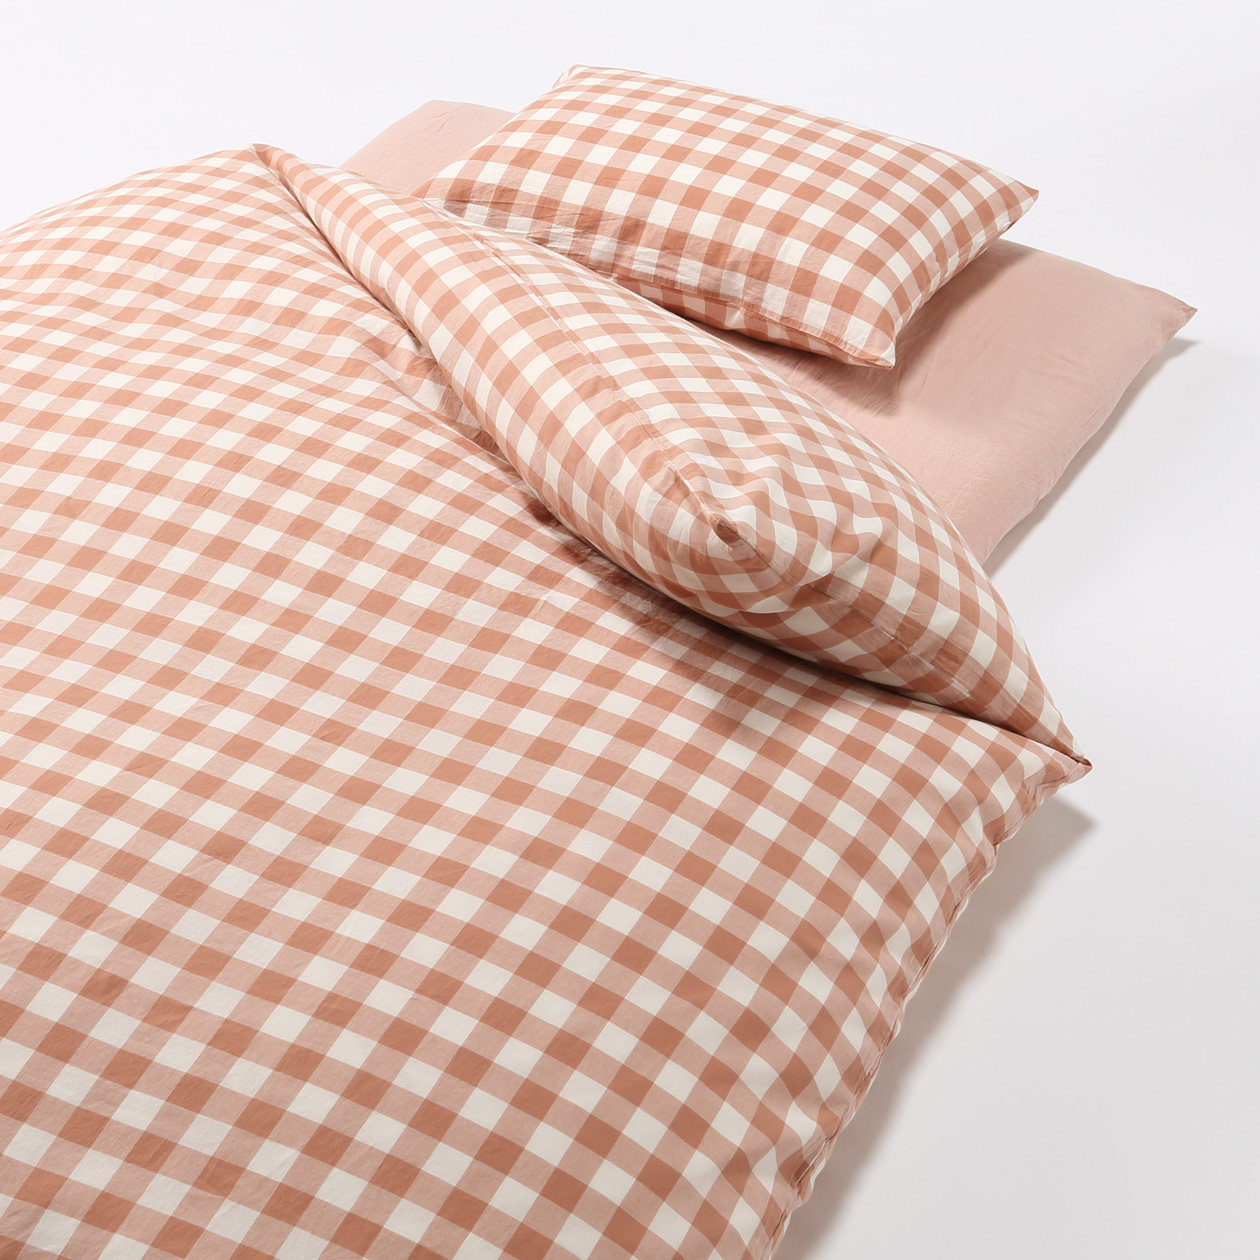 Cover Set For Futon S Light Pink Check